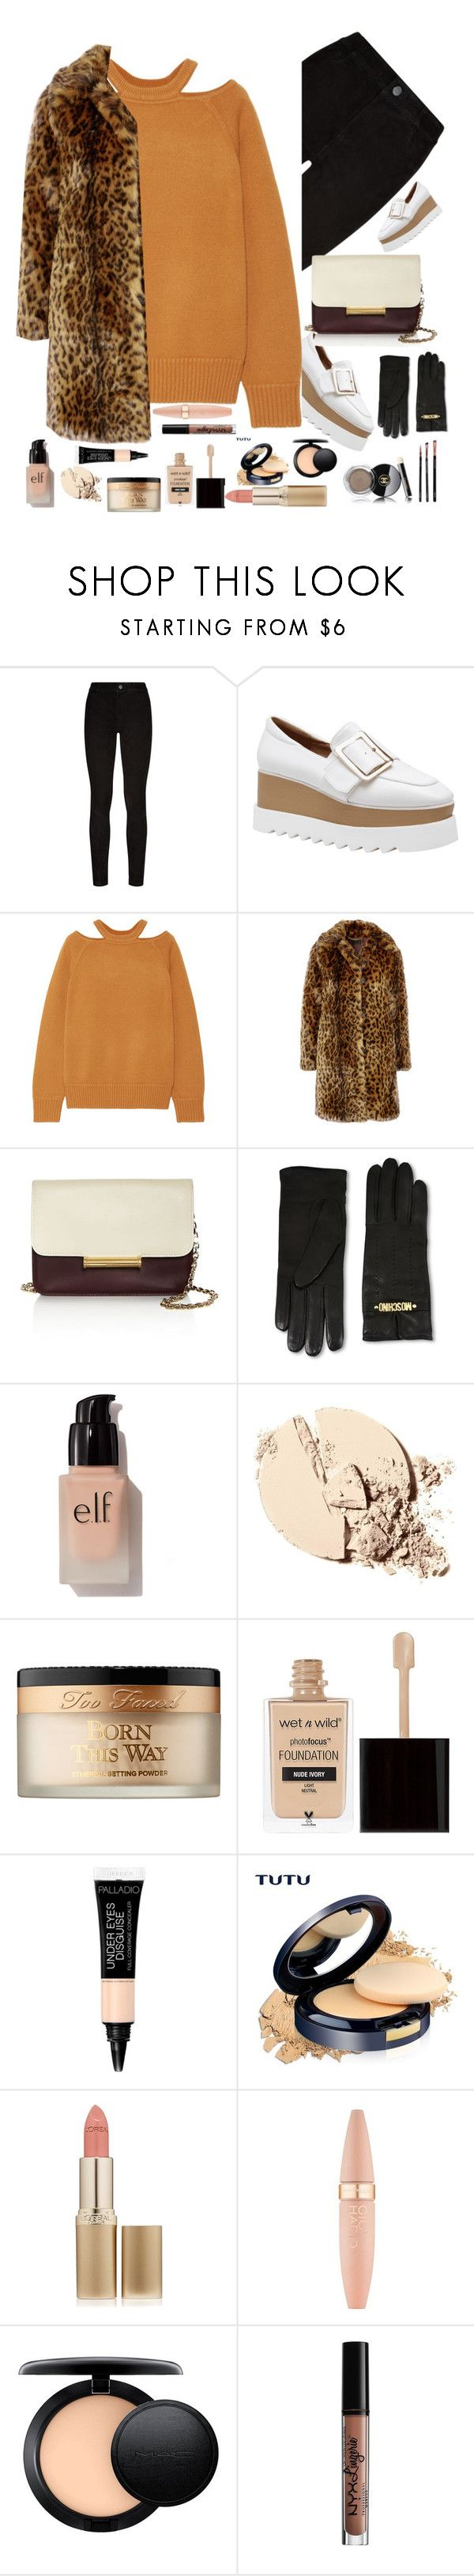 """Untitled #280"" by shahystyle ❤ liked on Polyvore featuring Paige Denim, Jason Wu, J.Crew, Moschino, e.l.f., Too Faced Cosmetics, Wet n Wild, L'Oréal Paris, Maybelline and MAC Cosmetics"